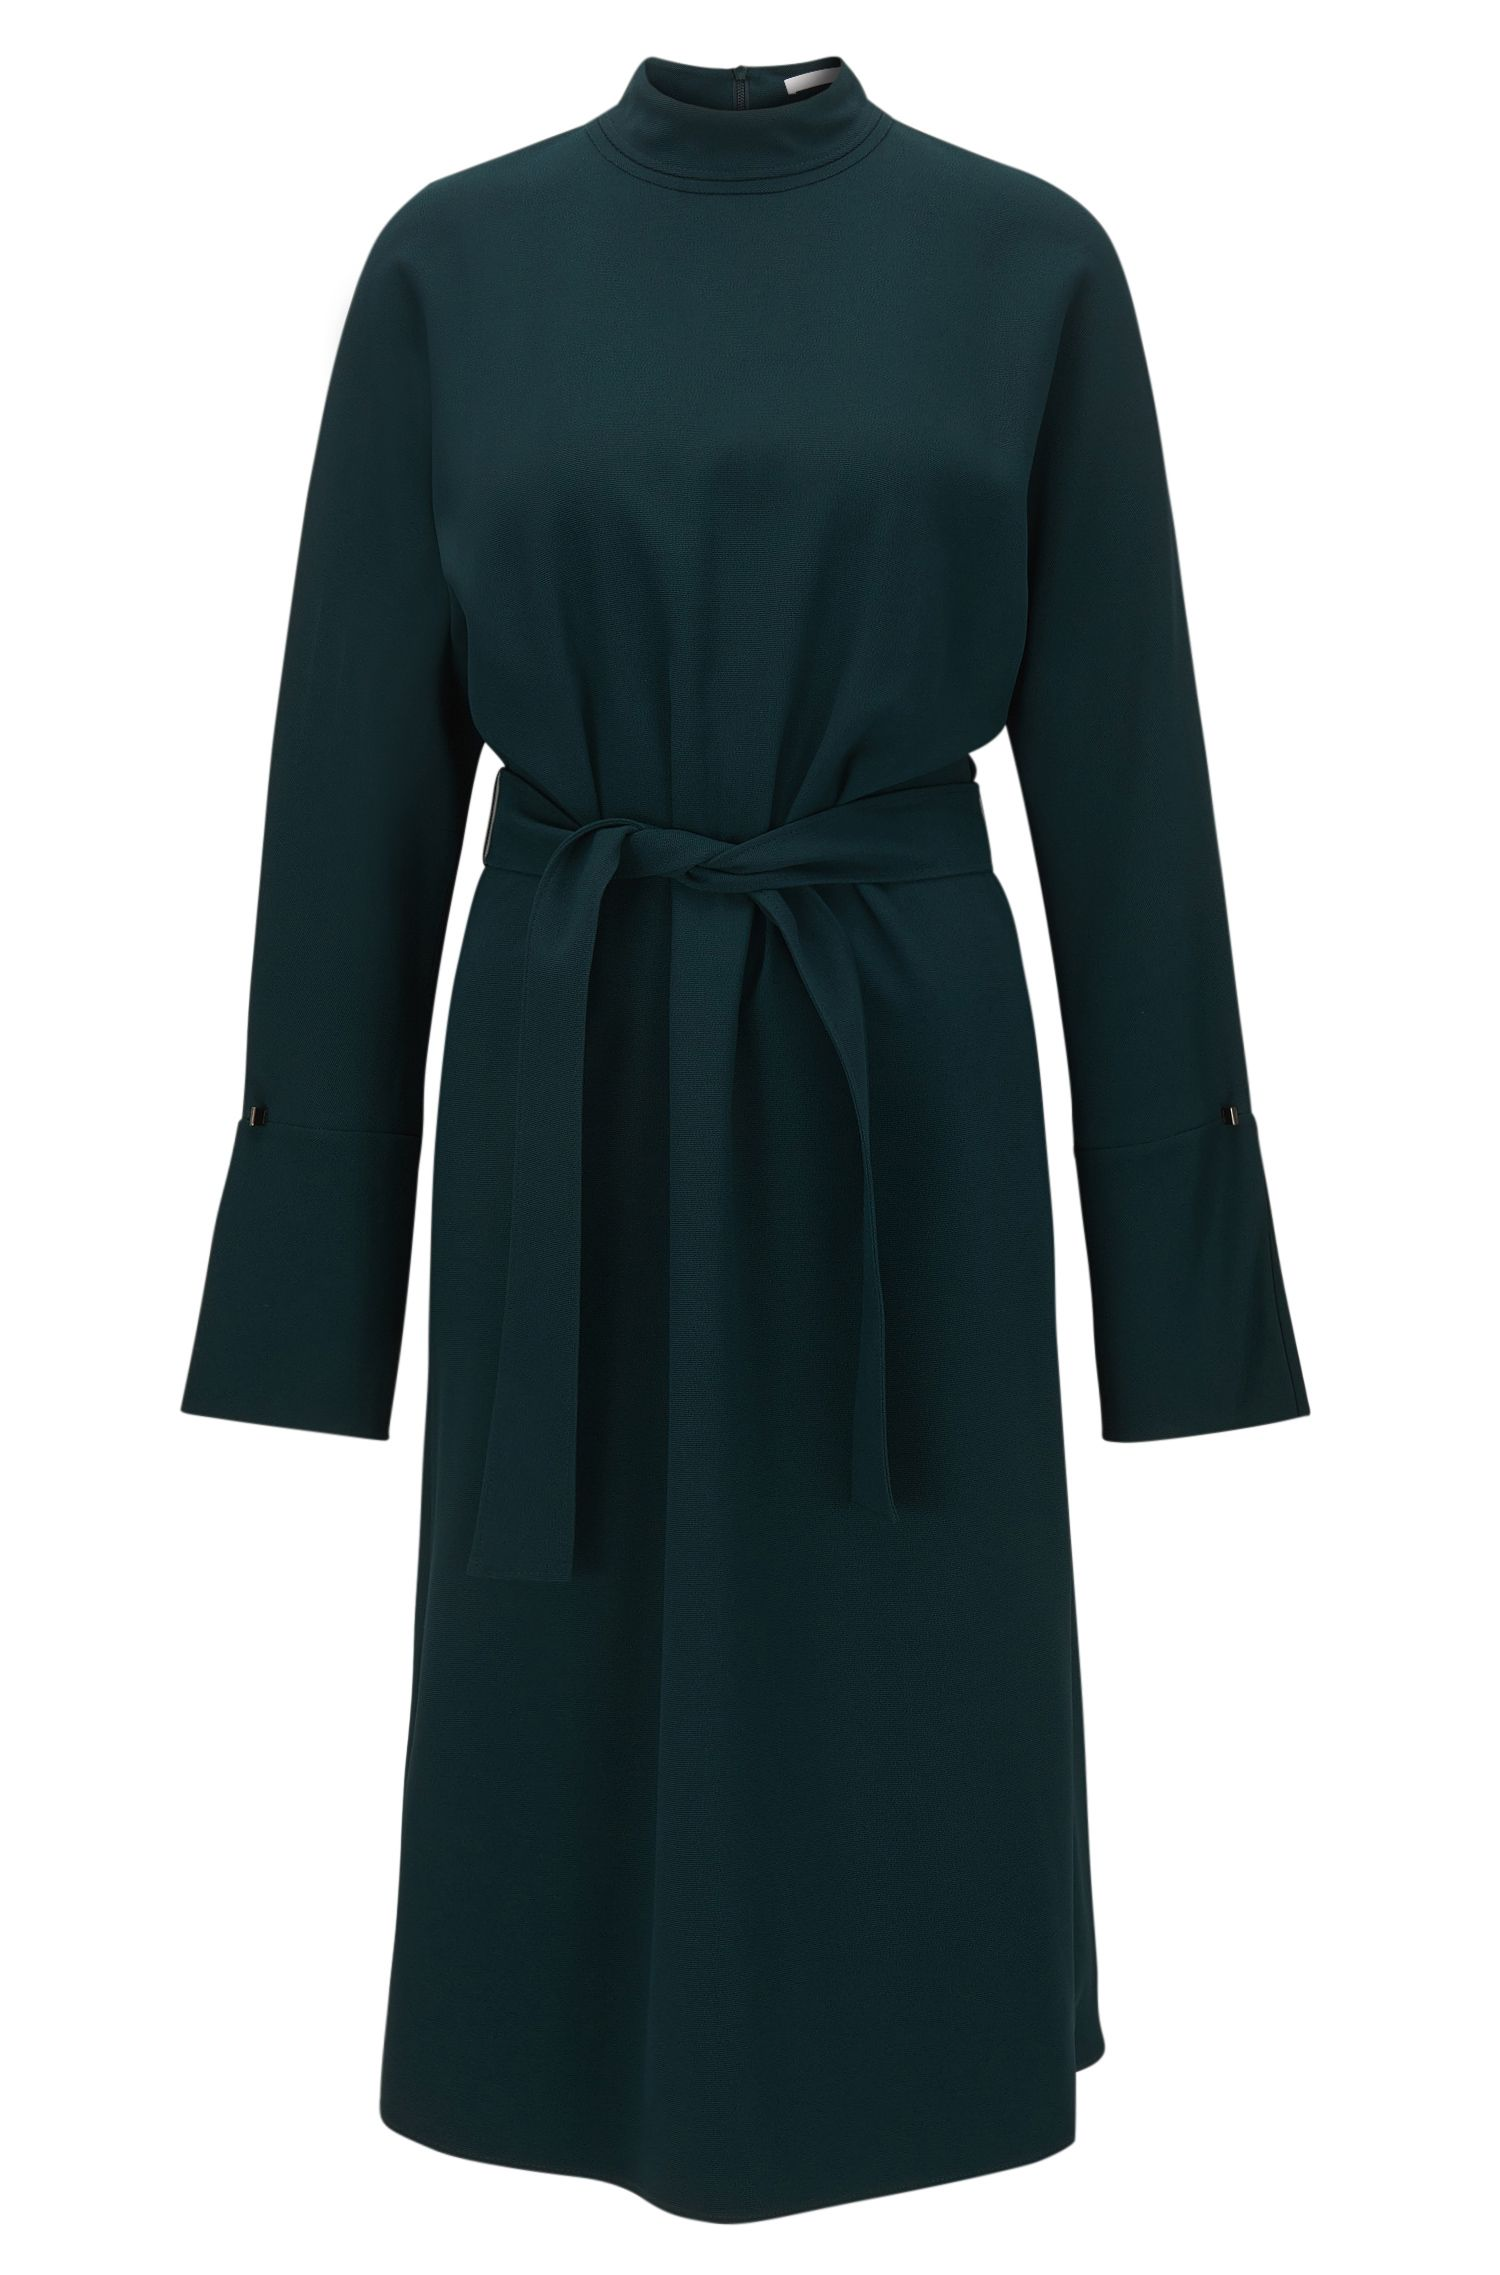 Long-sleeved turtle-neck dress in draped fabric